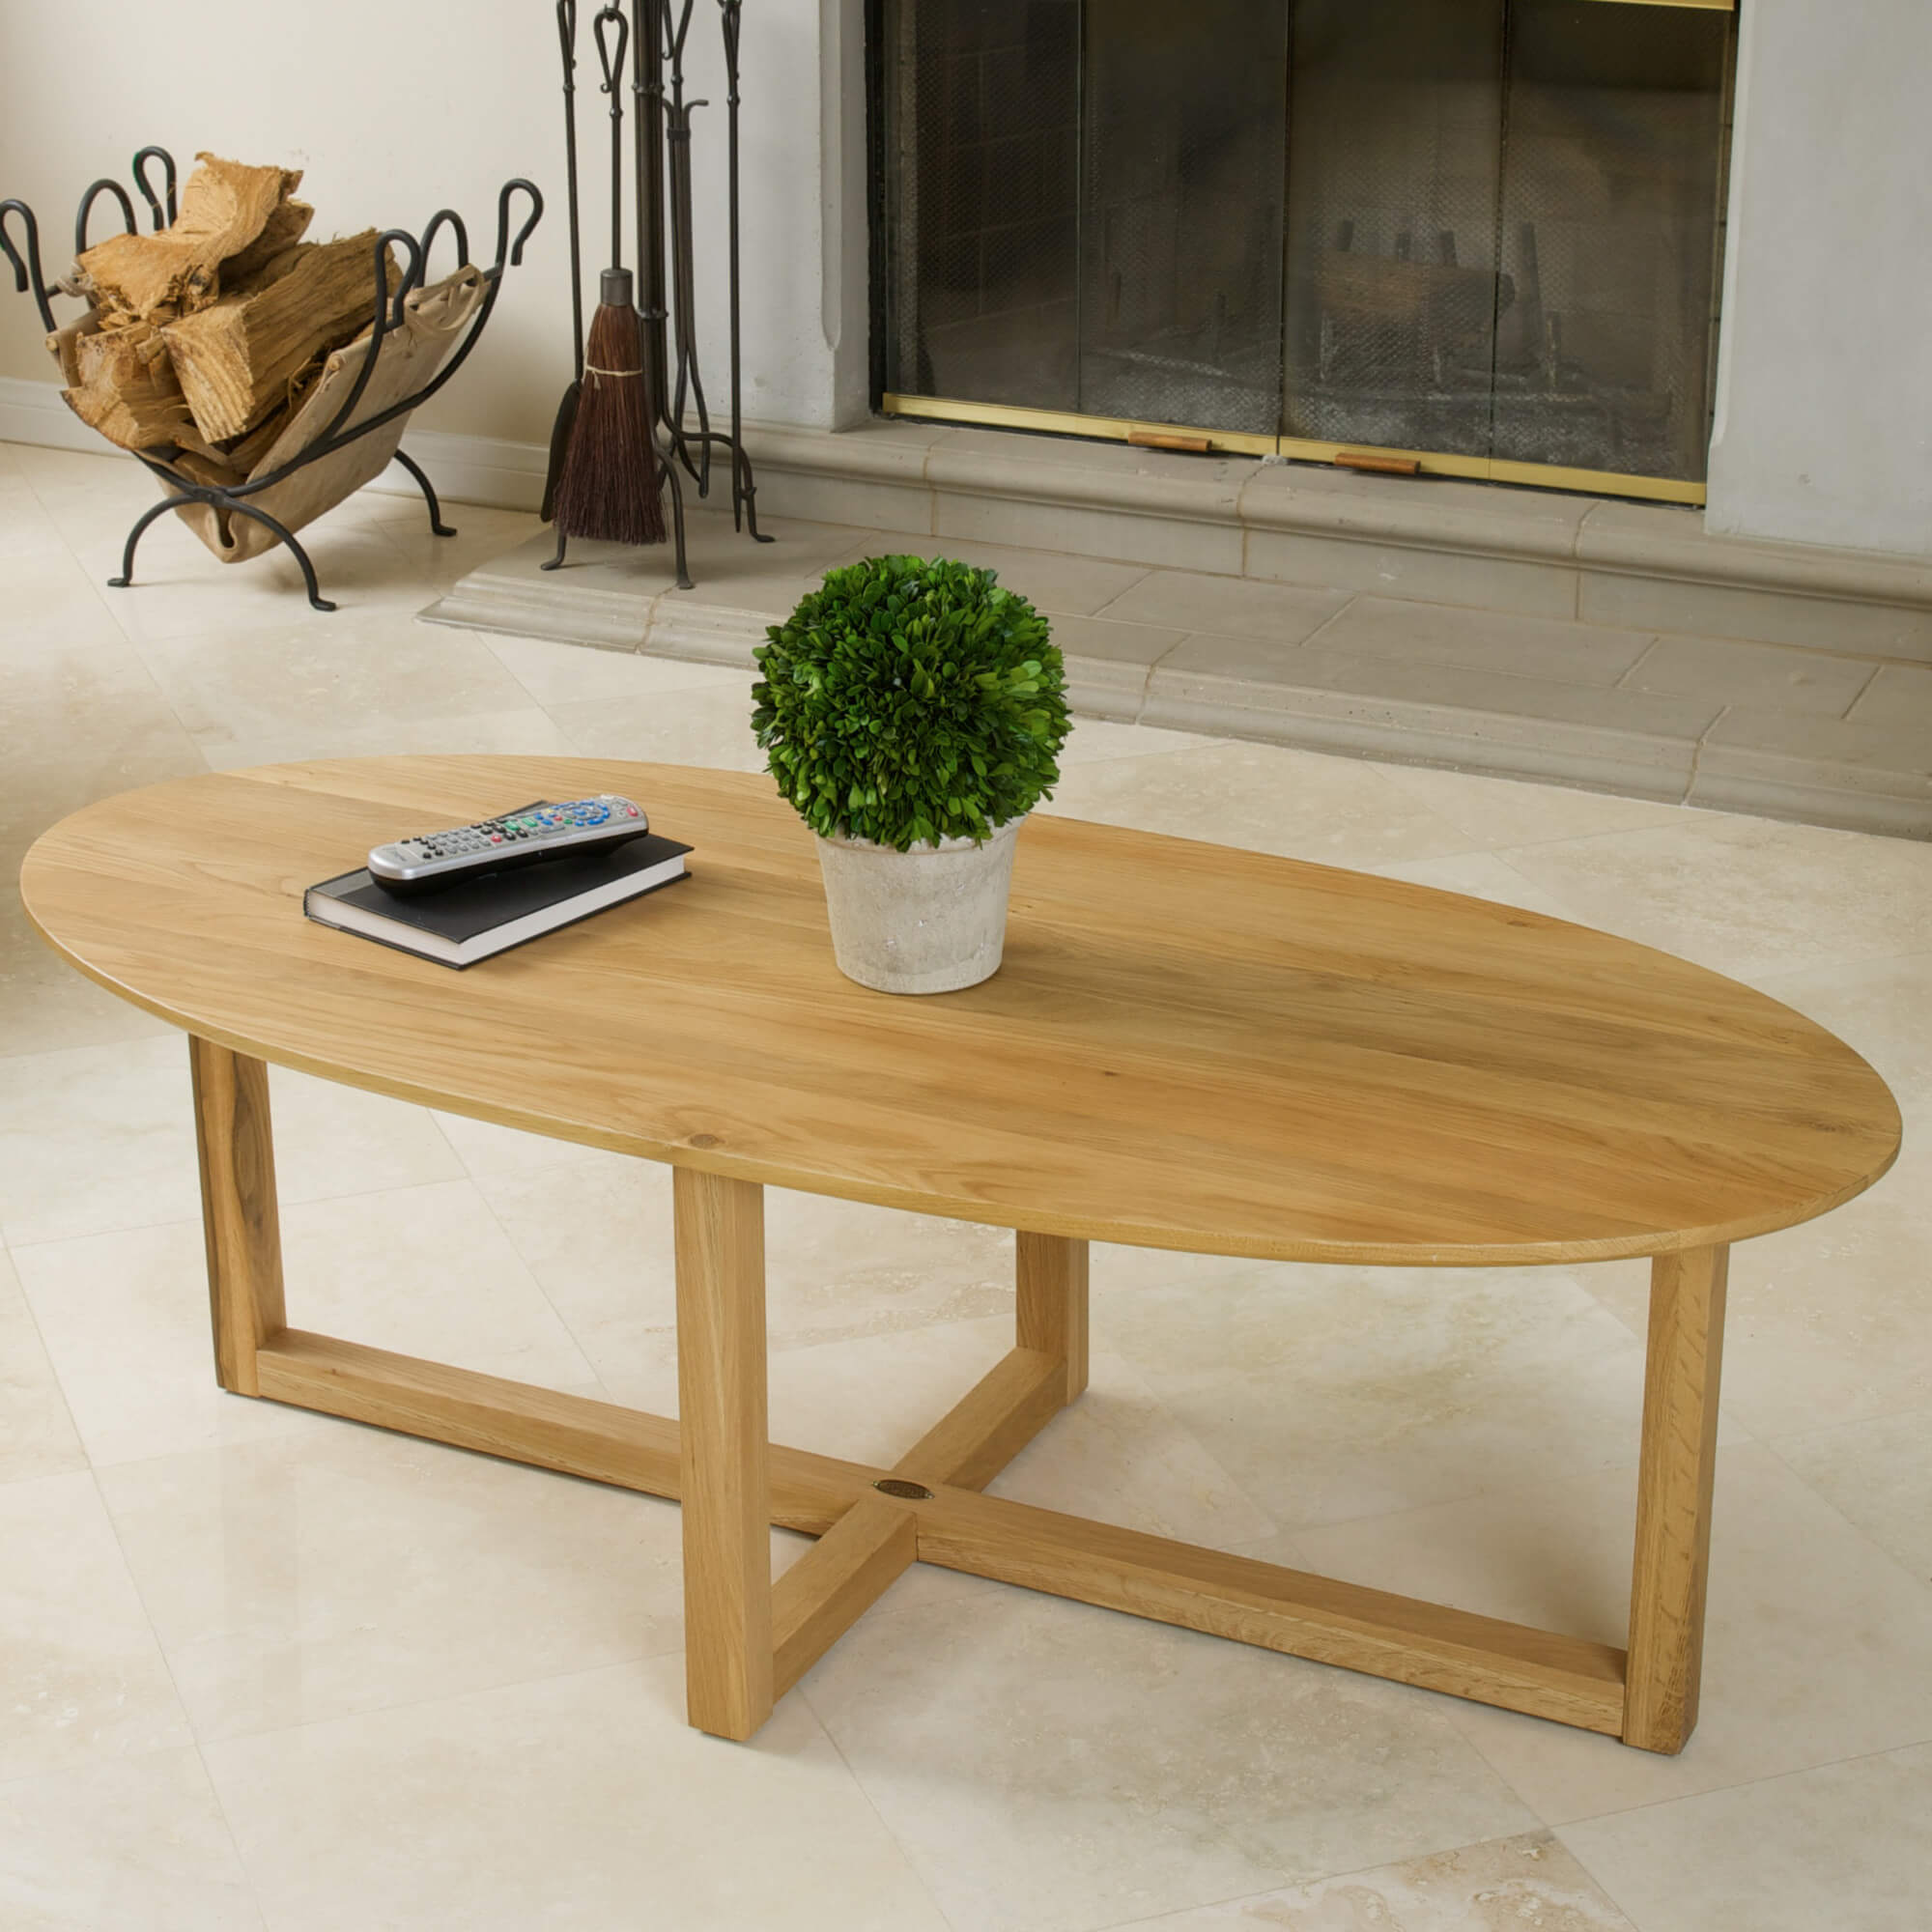 Here's a coffee table boasting light and bright natural wood tones. The wide, surf board shape is perfect for standing in front of lengthy sofas, and the bright color looks fantastic in lighter rooms.